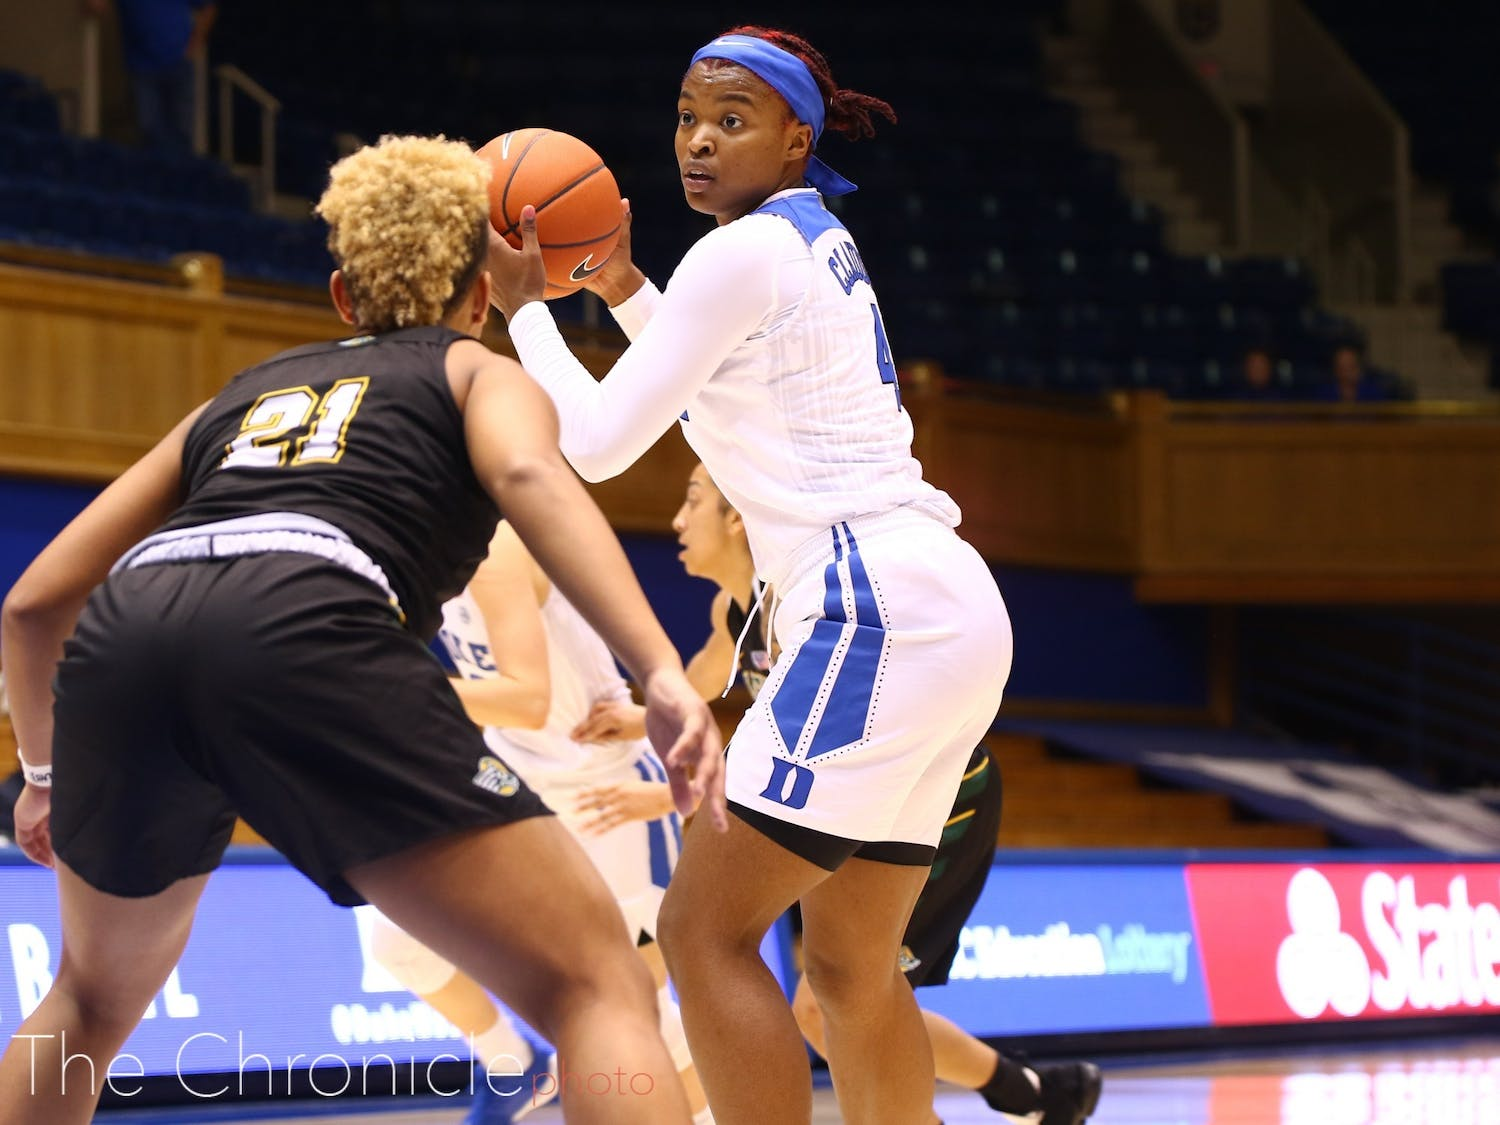 Jada Claude consistently uses her hustle and defense to make an impact on games, racking up nine steals last season while only averaging 9.7 minutes per game.